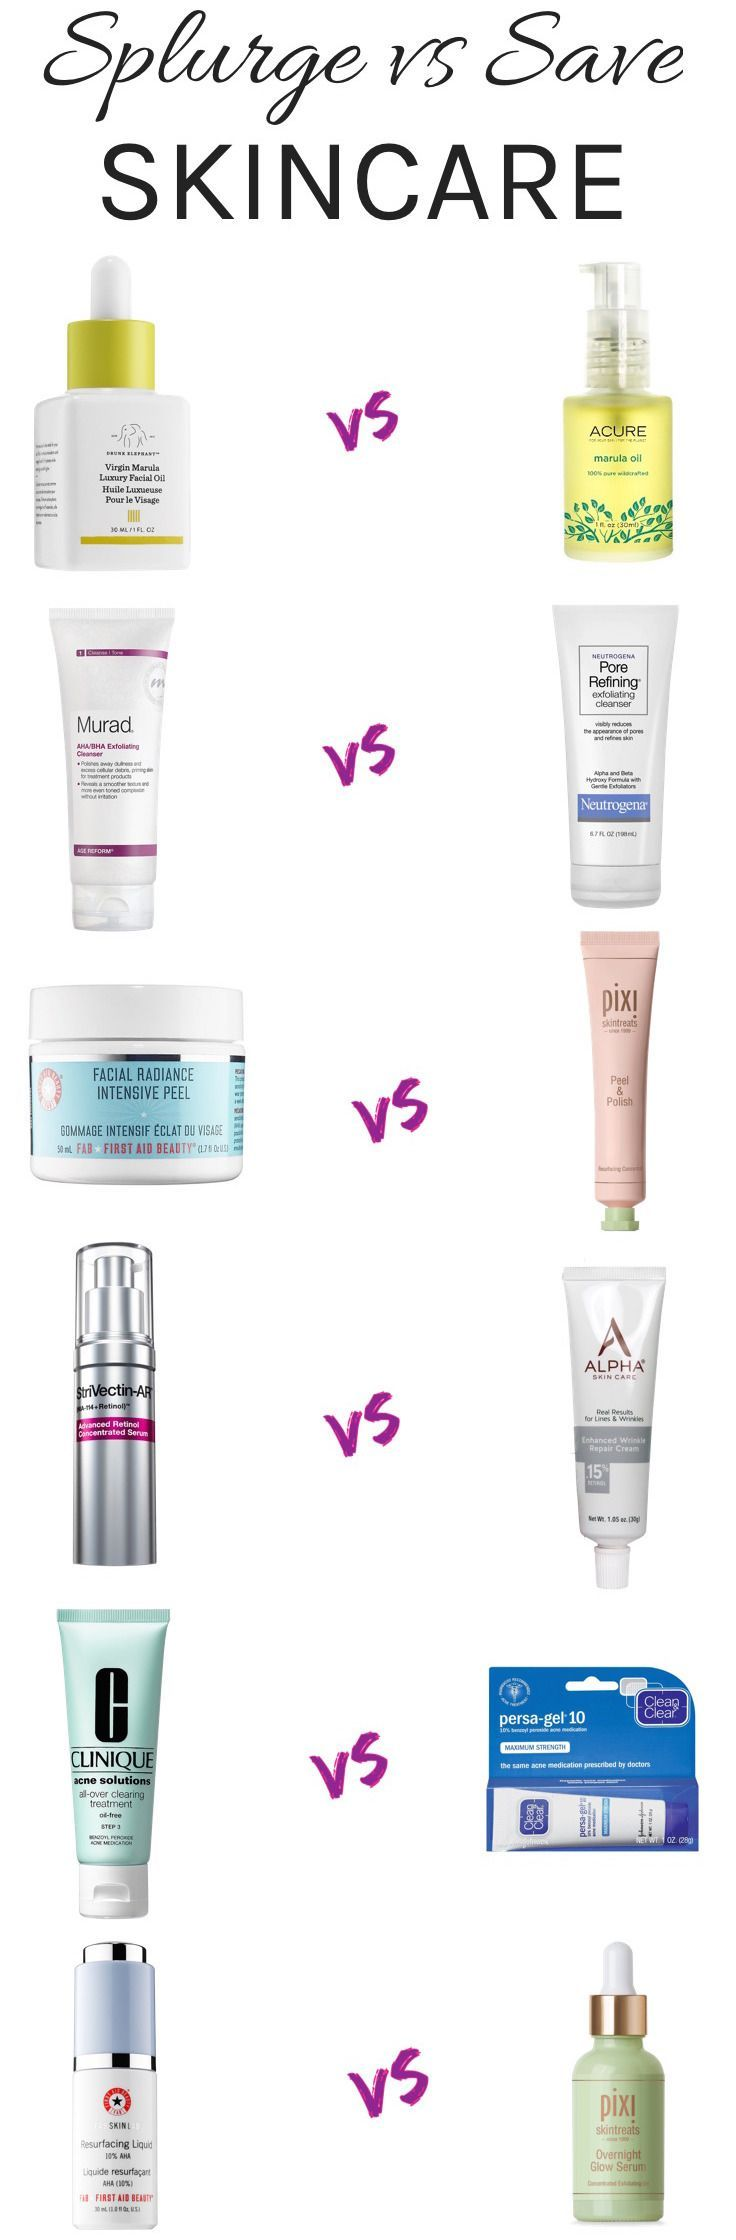 You don't need to spend a fortune to have healthy, glowing skin! Whether you're looking to protect, brighten or moisturize your skin, there's no shortage of top-notch skincare options at the drugstore. Don't miss these affordable alternatives for high-end skincare products that work just as well as their pricey counterparts! With these skincare dupes, you can have a great skincare routine even on a shoestring beauty budget!